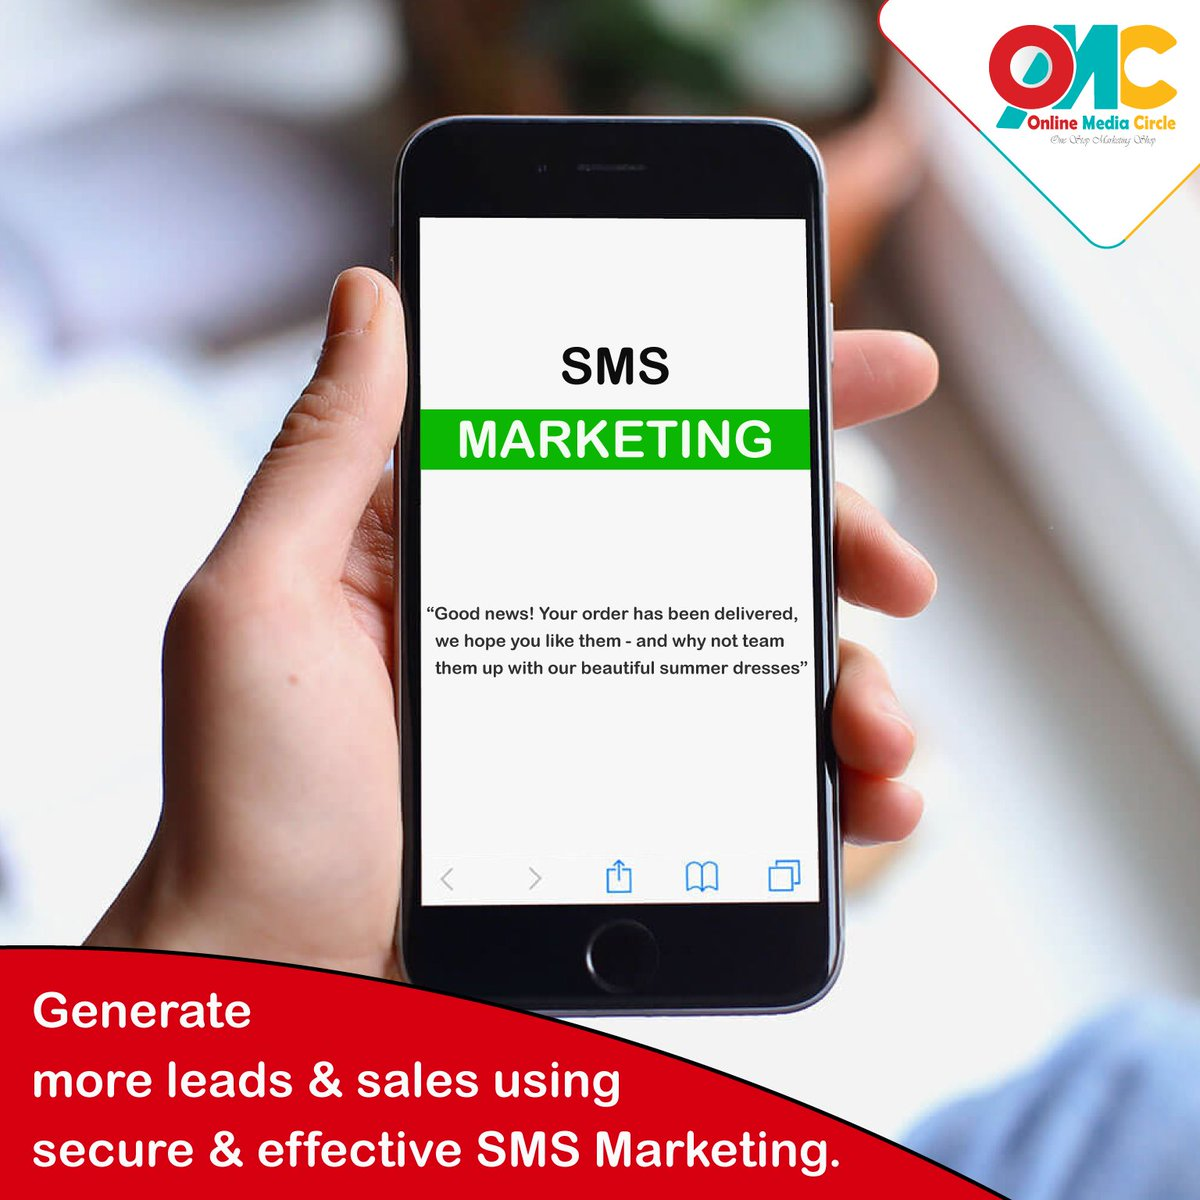 Generate more leads & sales using secure & effective SMS Marketing.  #BrandedSMS #SMSMarketing #SMSPromotion<br>http://pic.twitter.com/wE6DFd9BGB